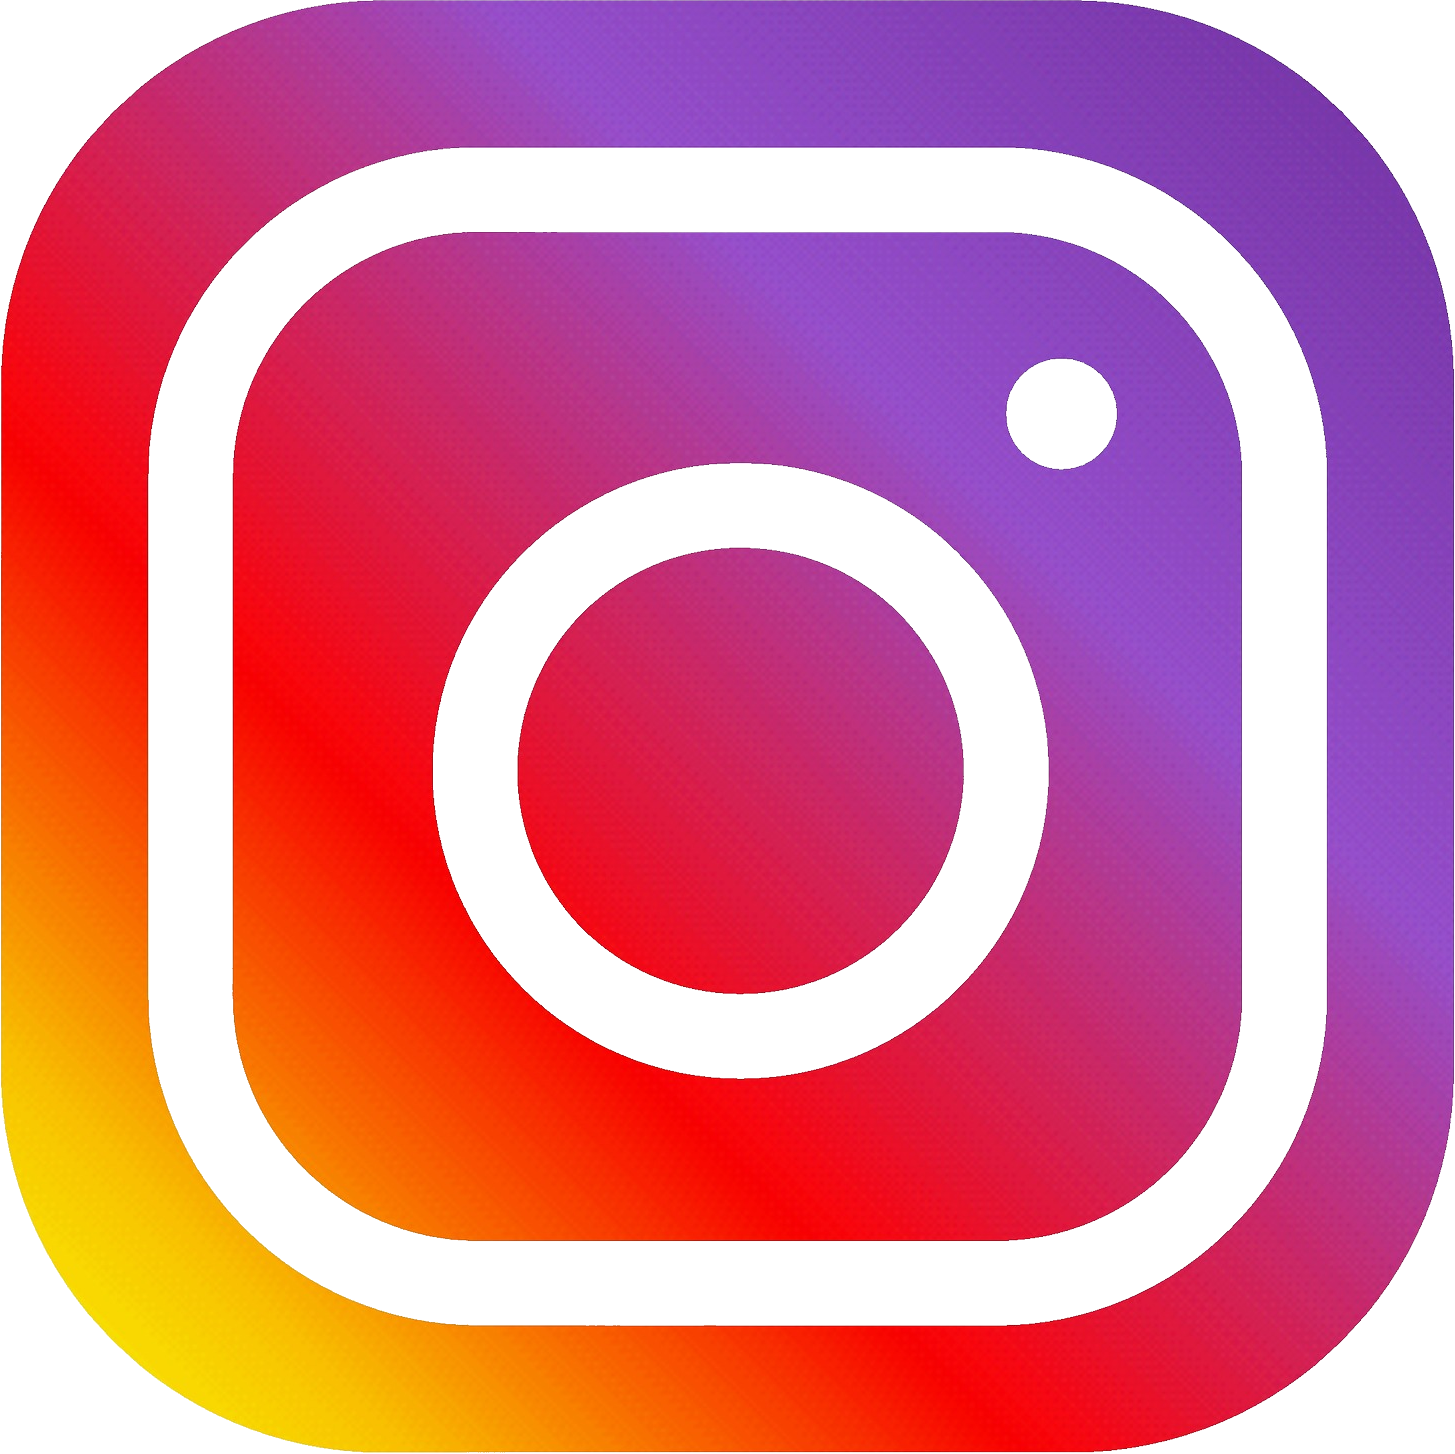 Billedresultat for instagram logo png